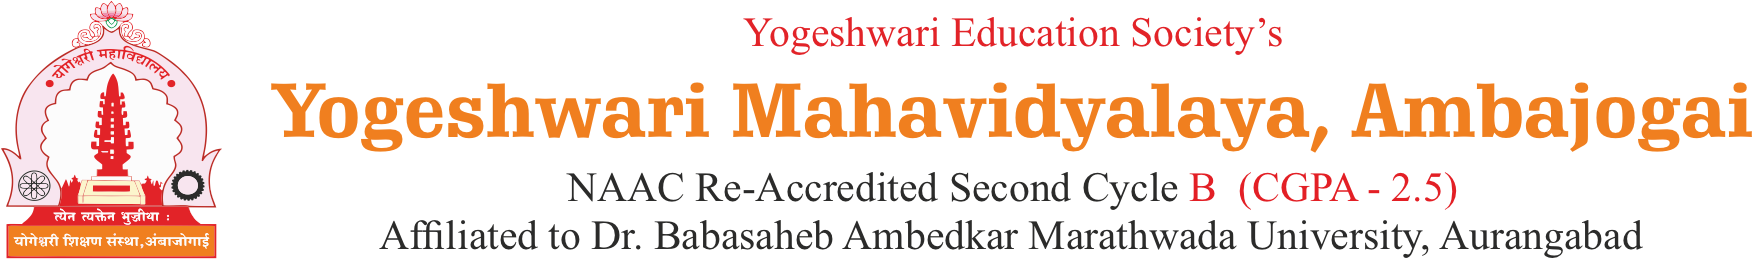 Welcome to Yogeshwari Education Society, Ambajogai